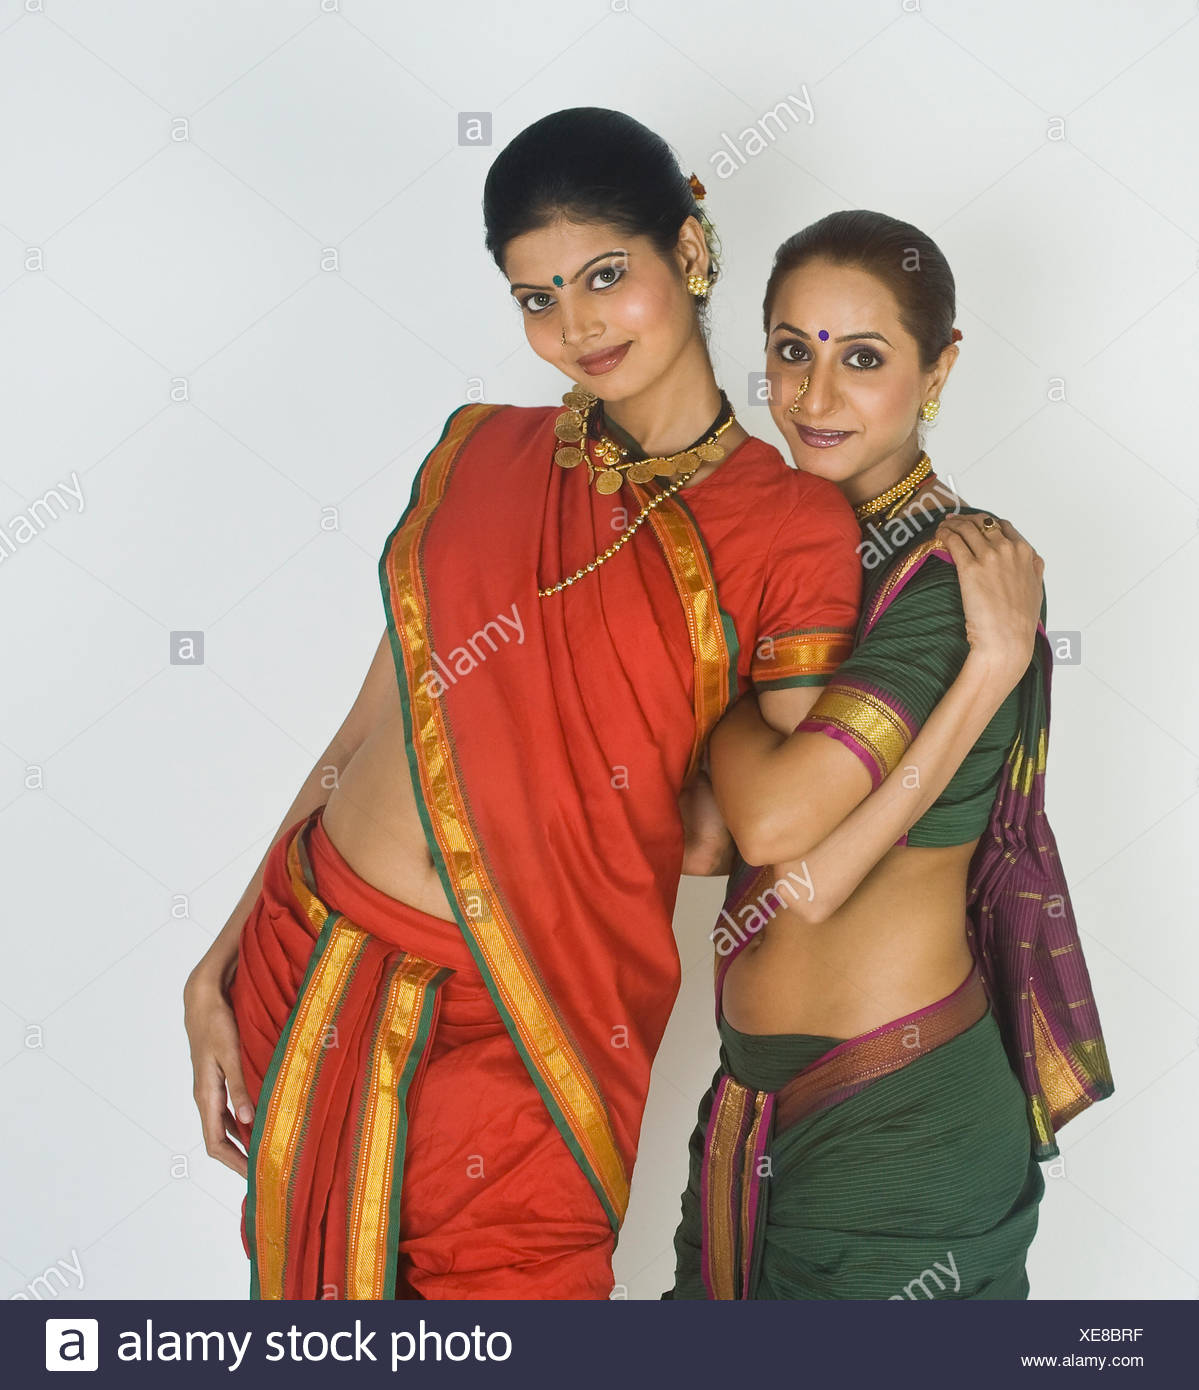 Portrait of two female folk dancers posing - Stock Image